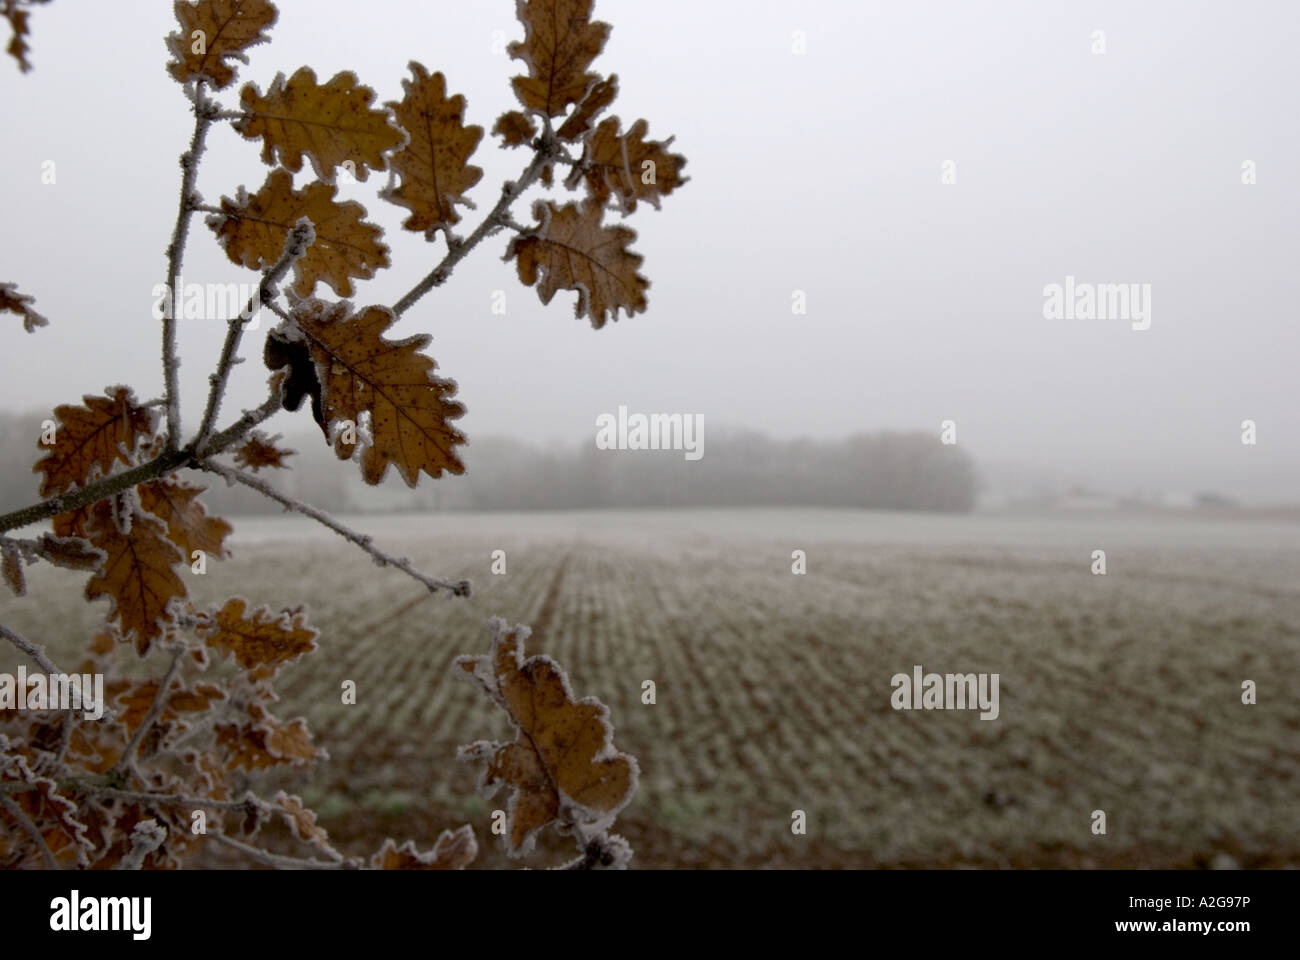 looking across a frost covered ploughed field with a branch with oak leaves in foreground - Stock Image